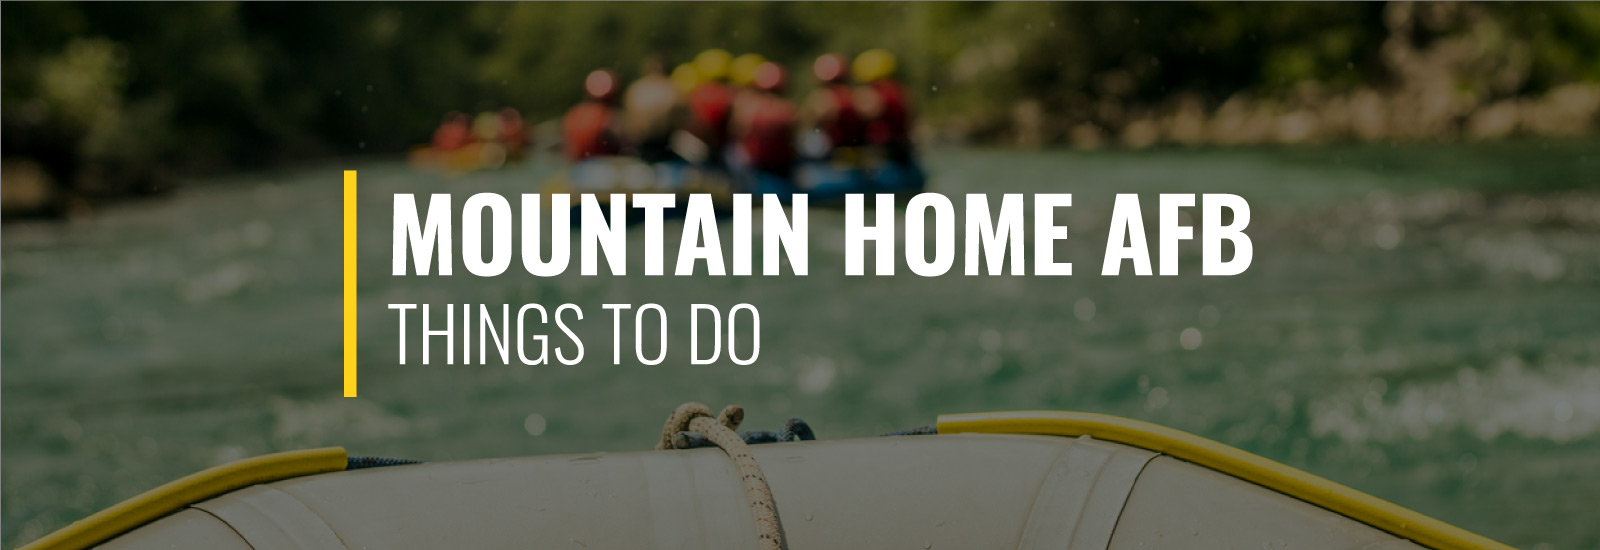 Mountain Home AFB Things to Do